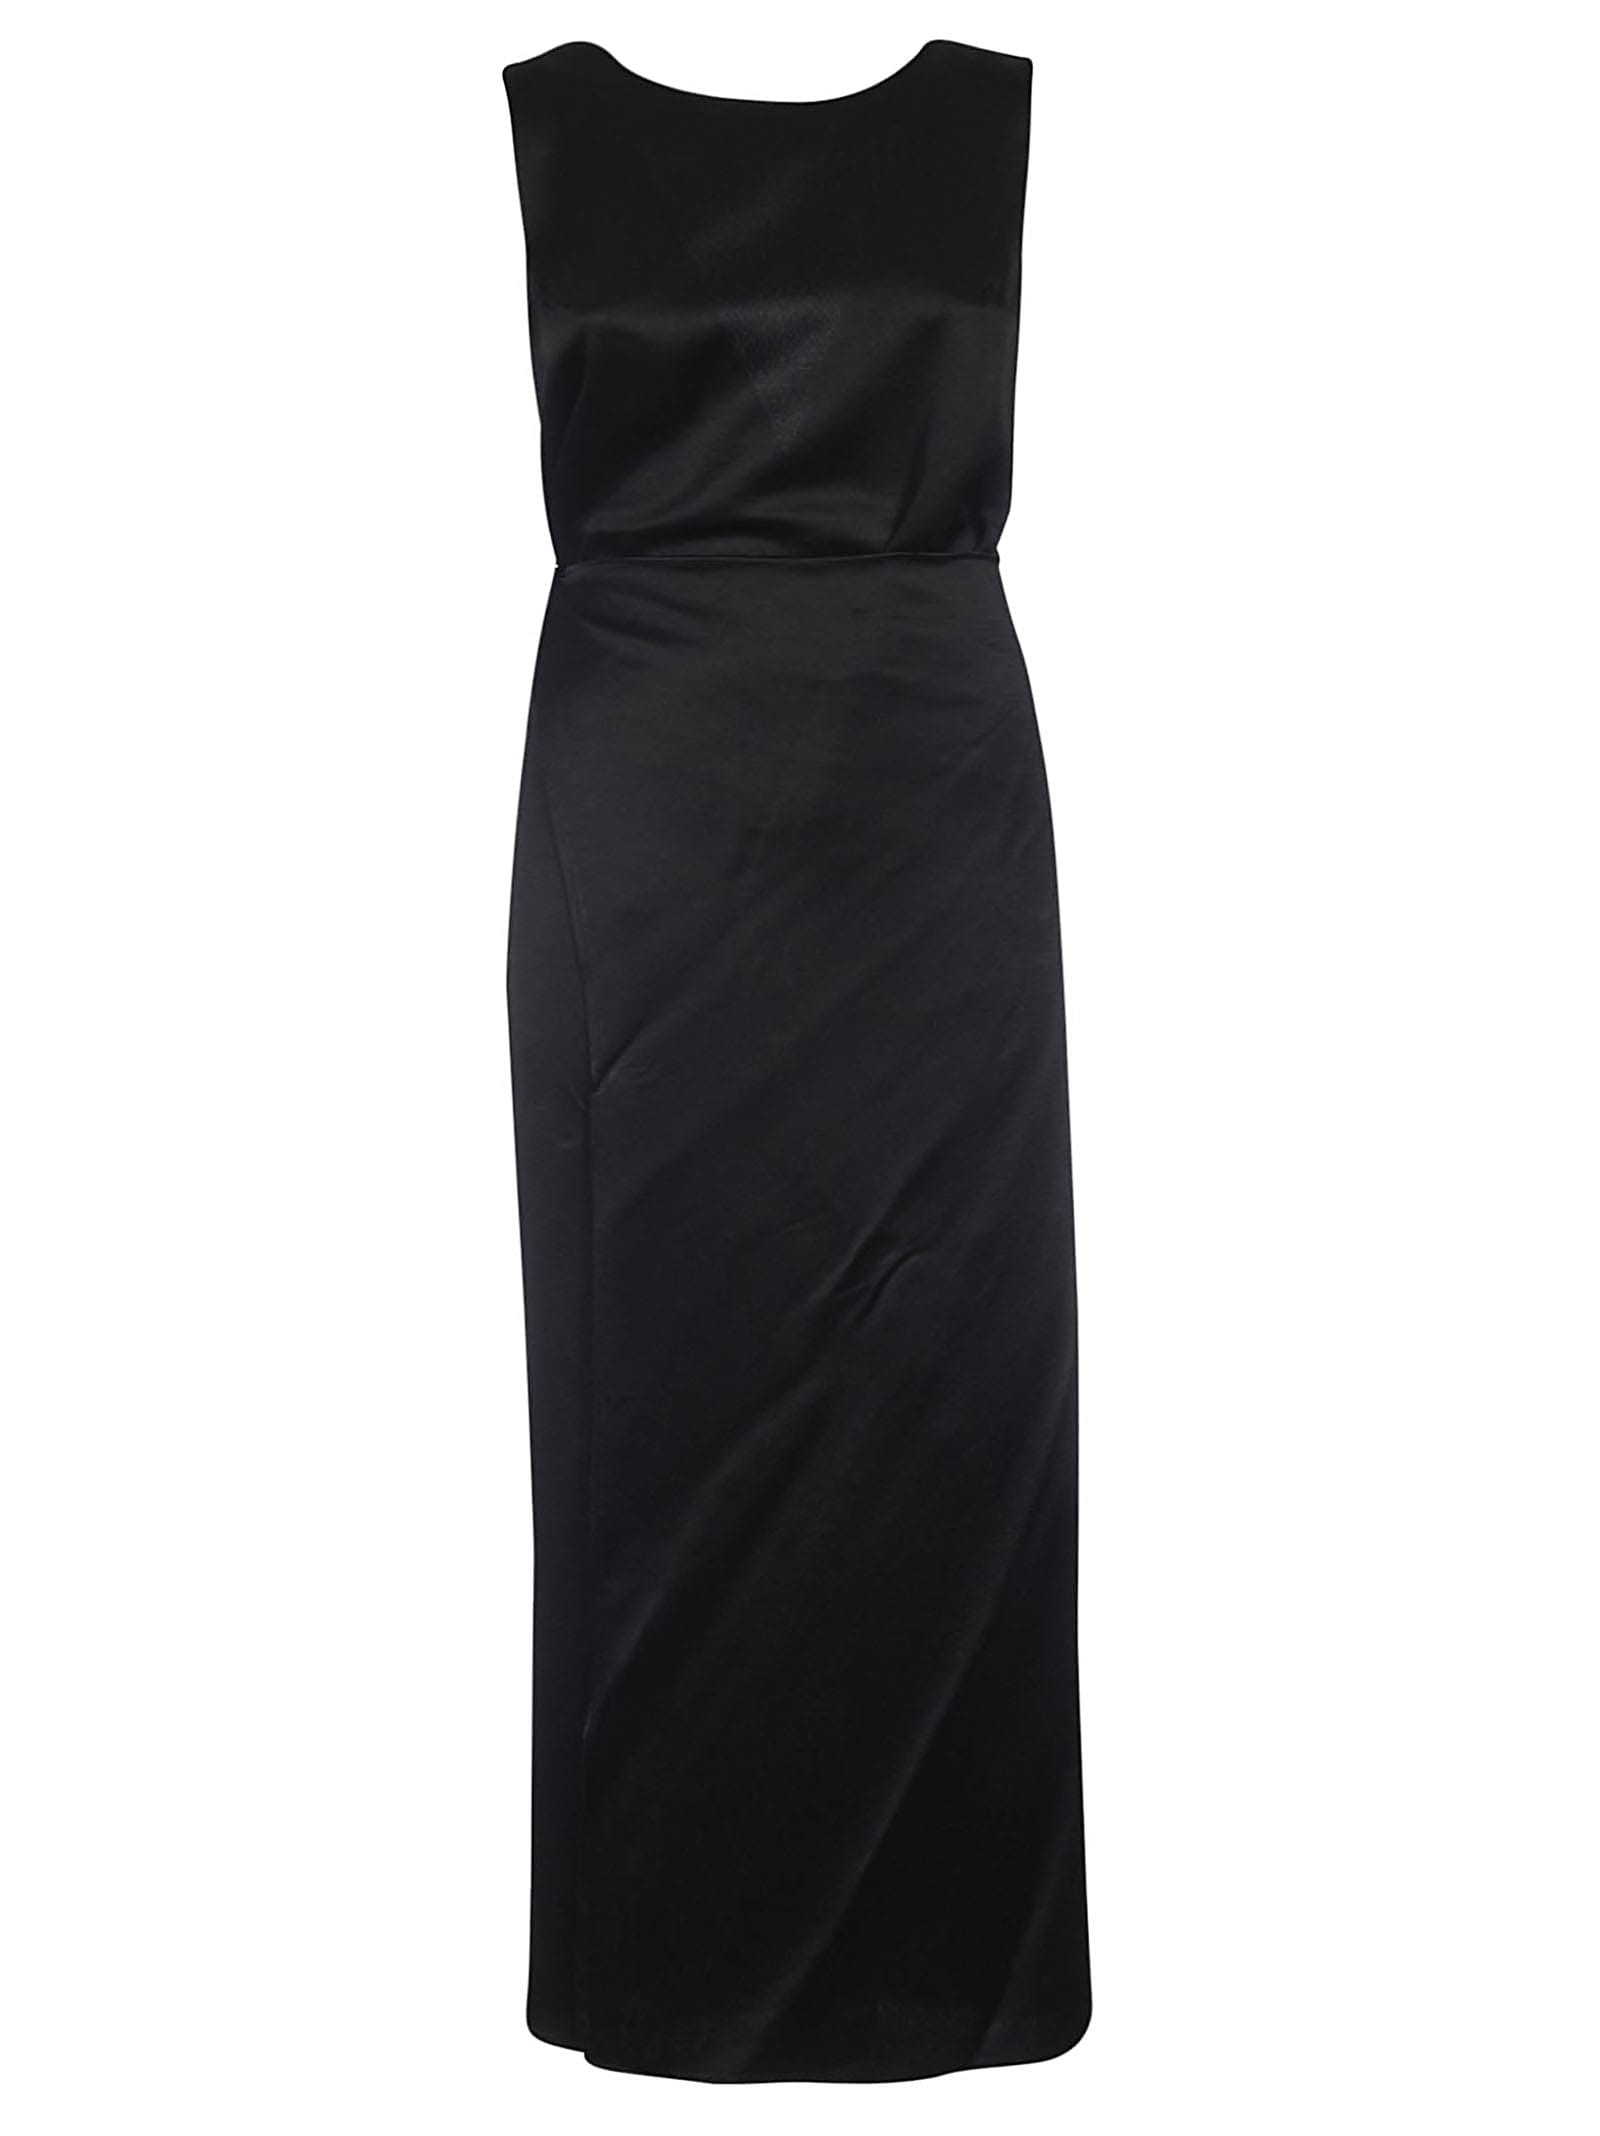 Erika Cavallini Tie Waist Dress